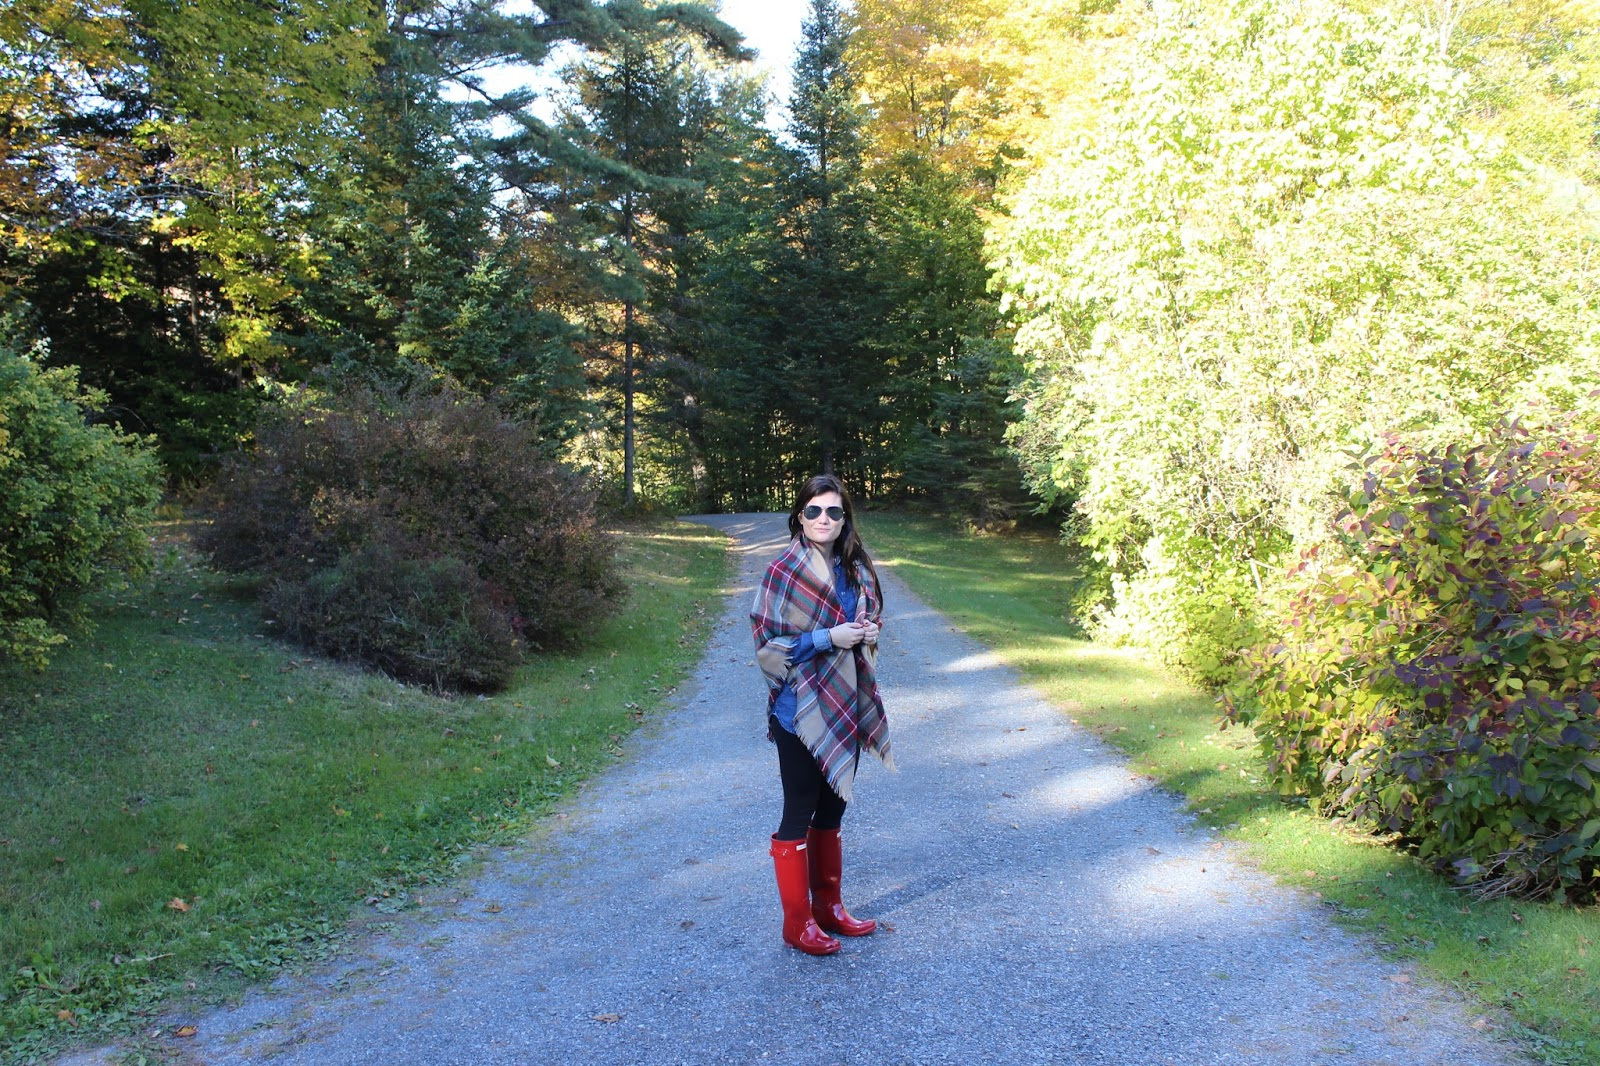 The Neapolitan, Vermont, Fall, Fall in Vermont